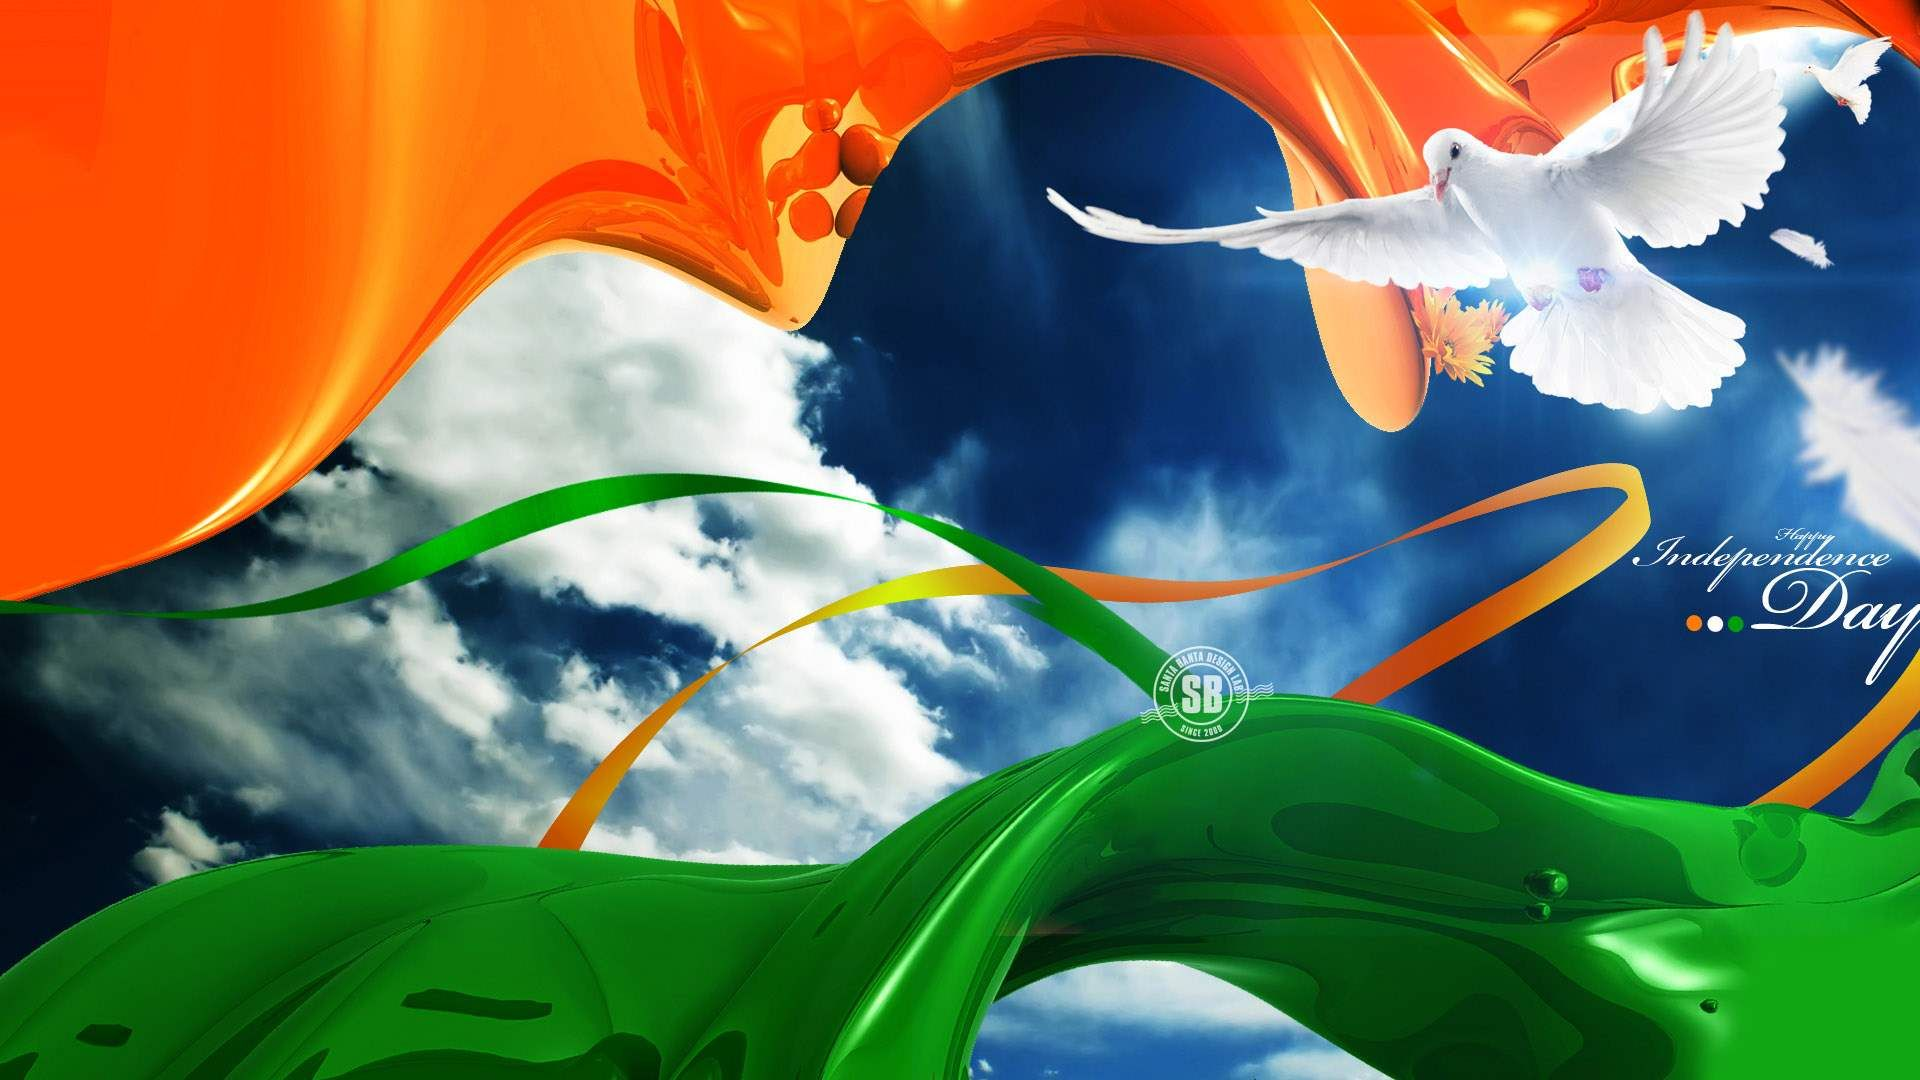 India Independence Day HD Wallpapers 2015 and Messages